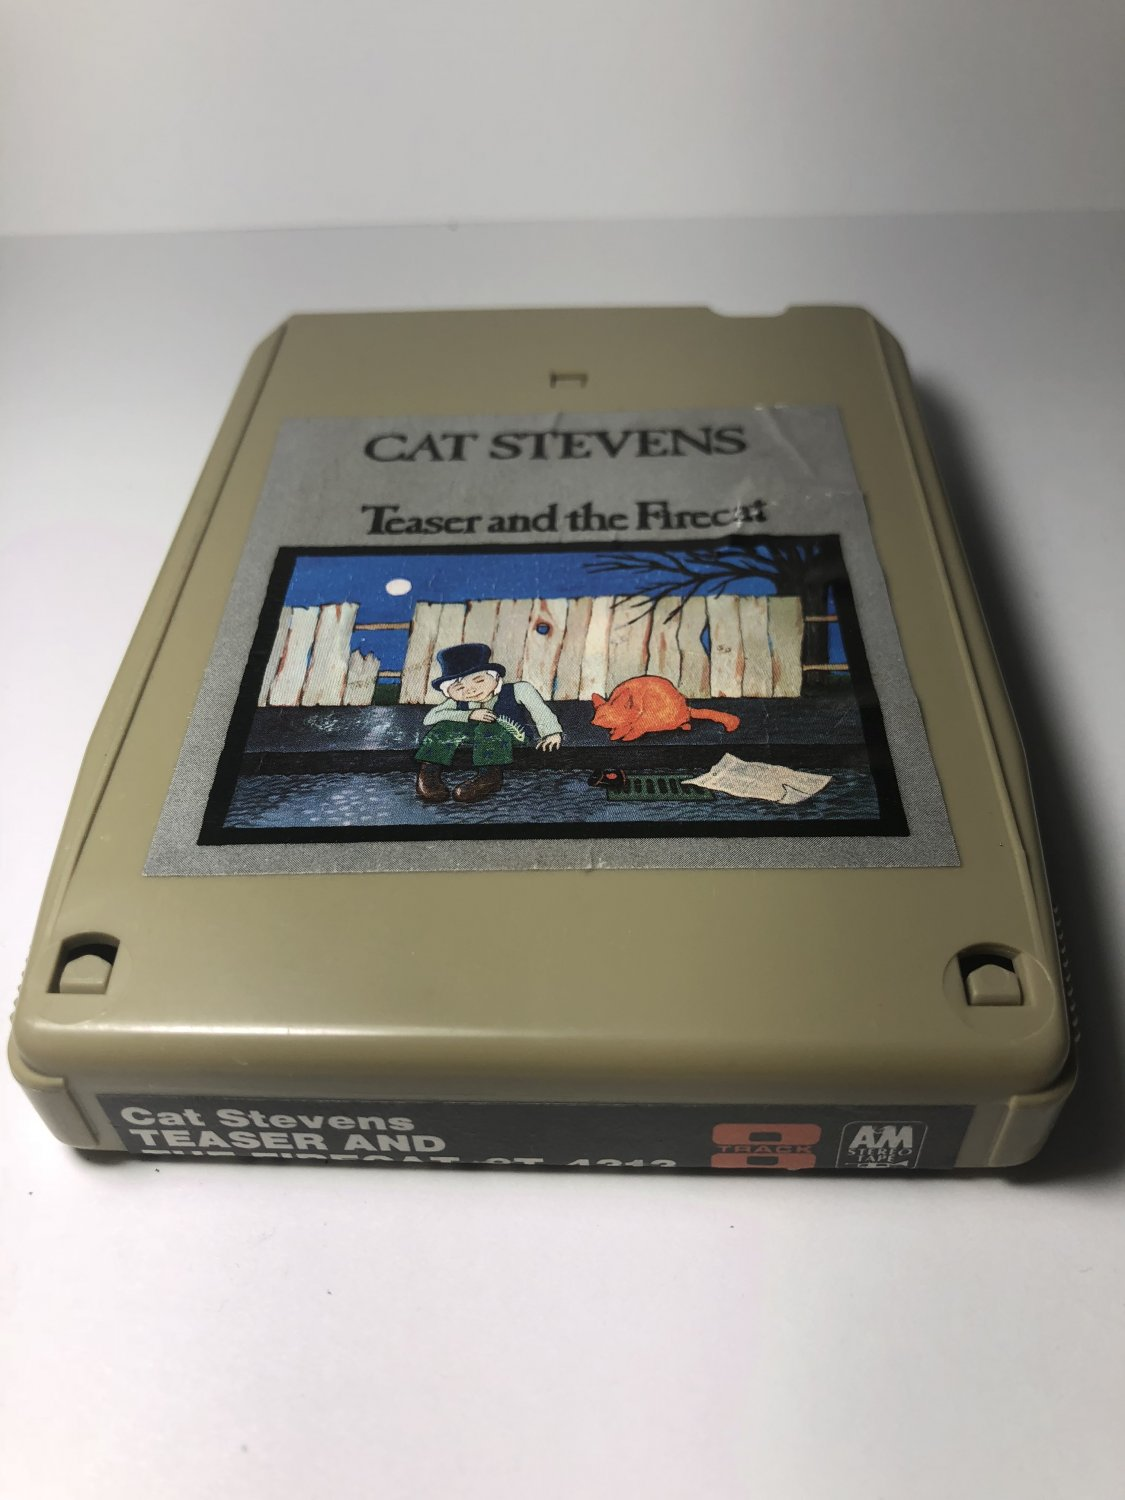 Restore Your Own - Cat Stevens Teaser Fire Cat AS-IS 8-TRACK TAPE